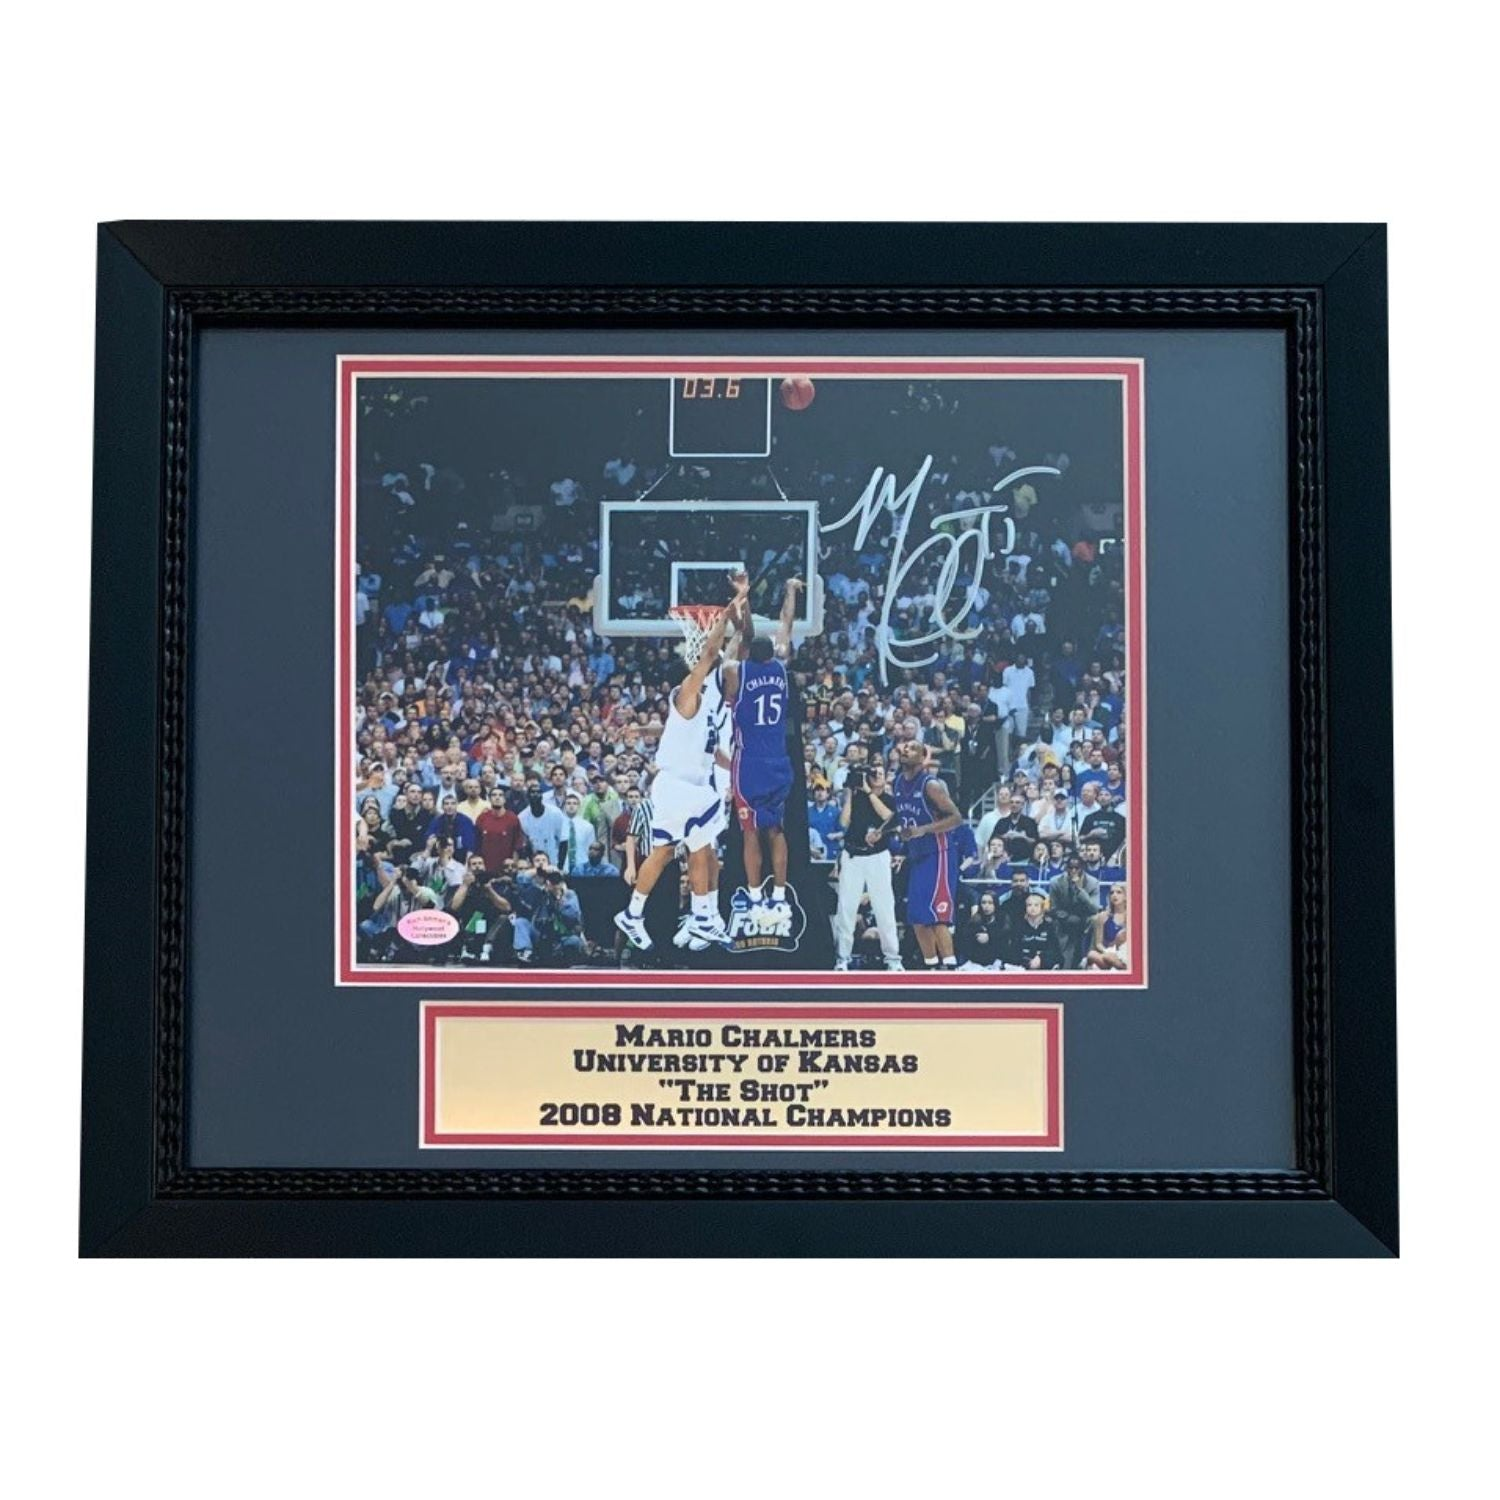 Mario Chalmers Autographed Kansas Jayhawks THE SHOT Signed Framed 8x10 Basketball Photo